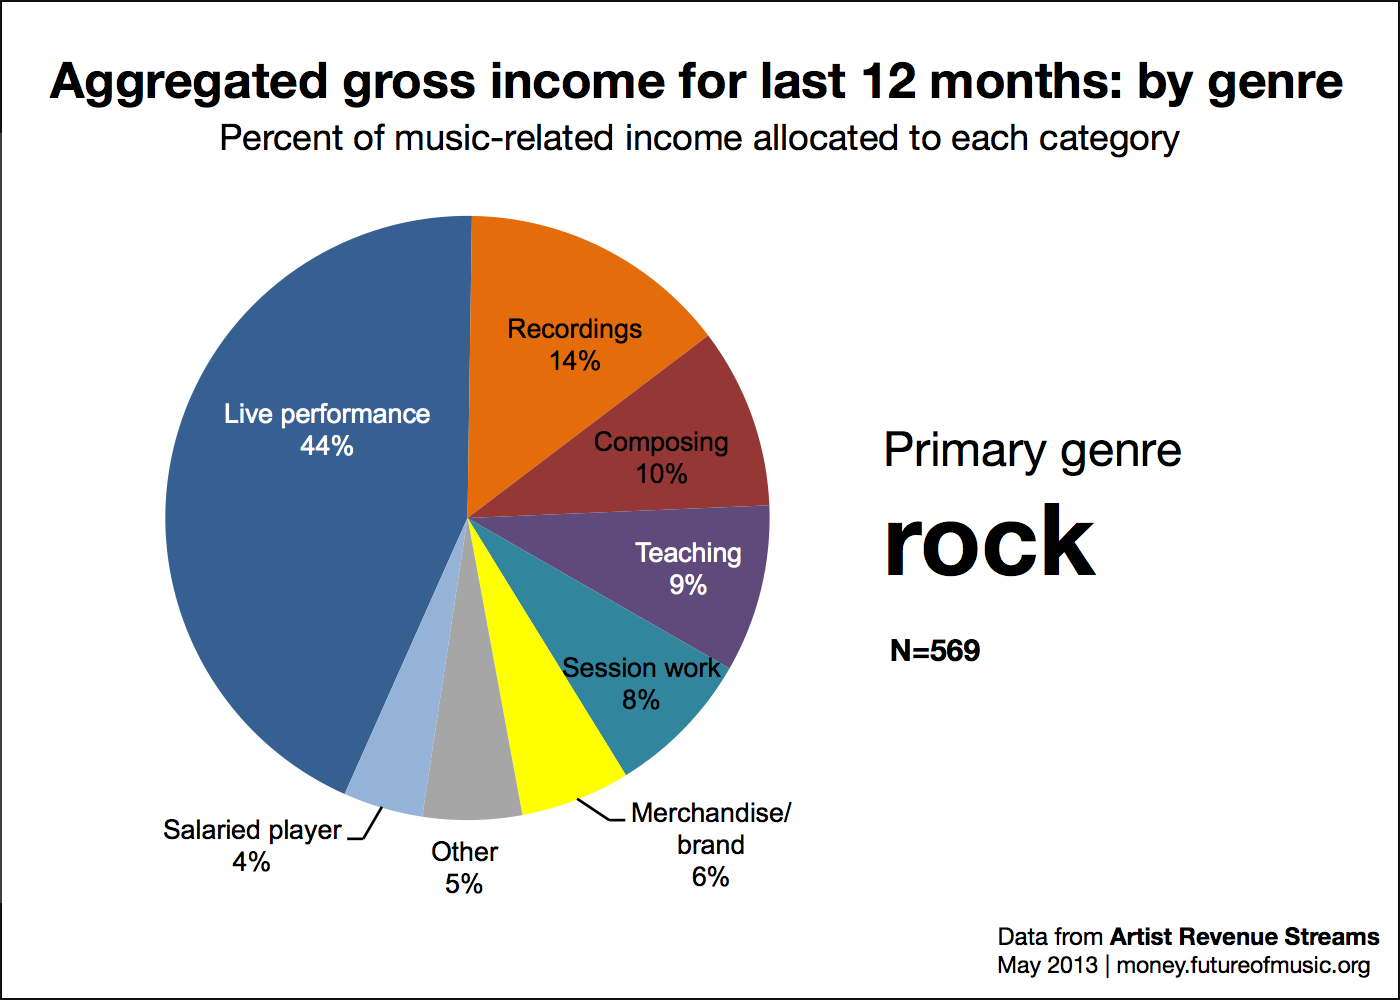 Revenue allocation for rock genre